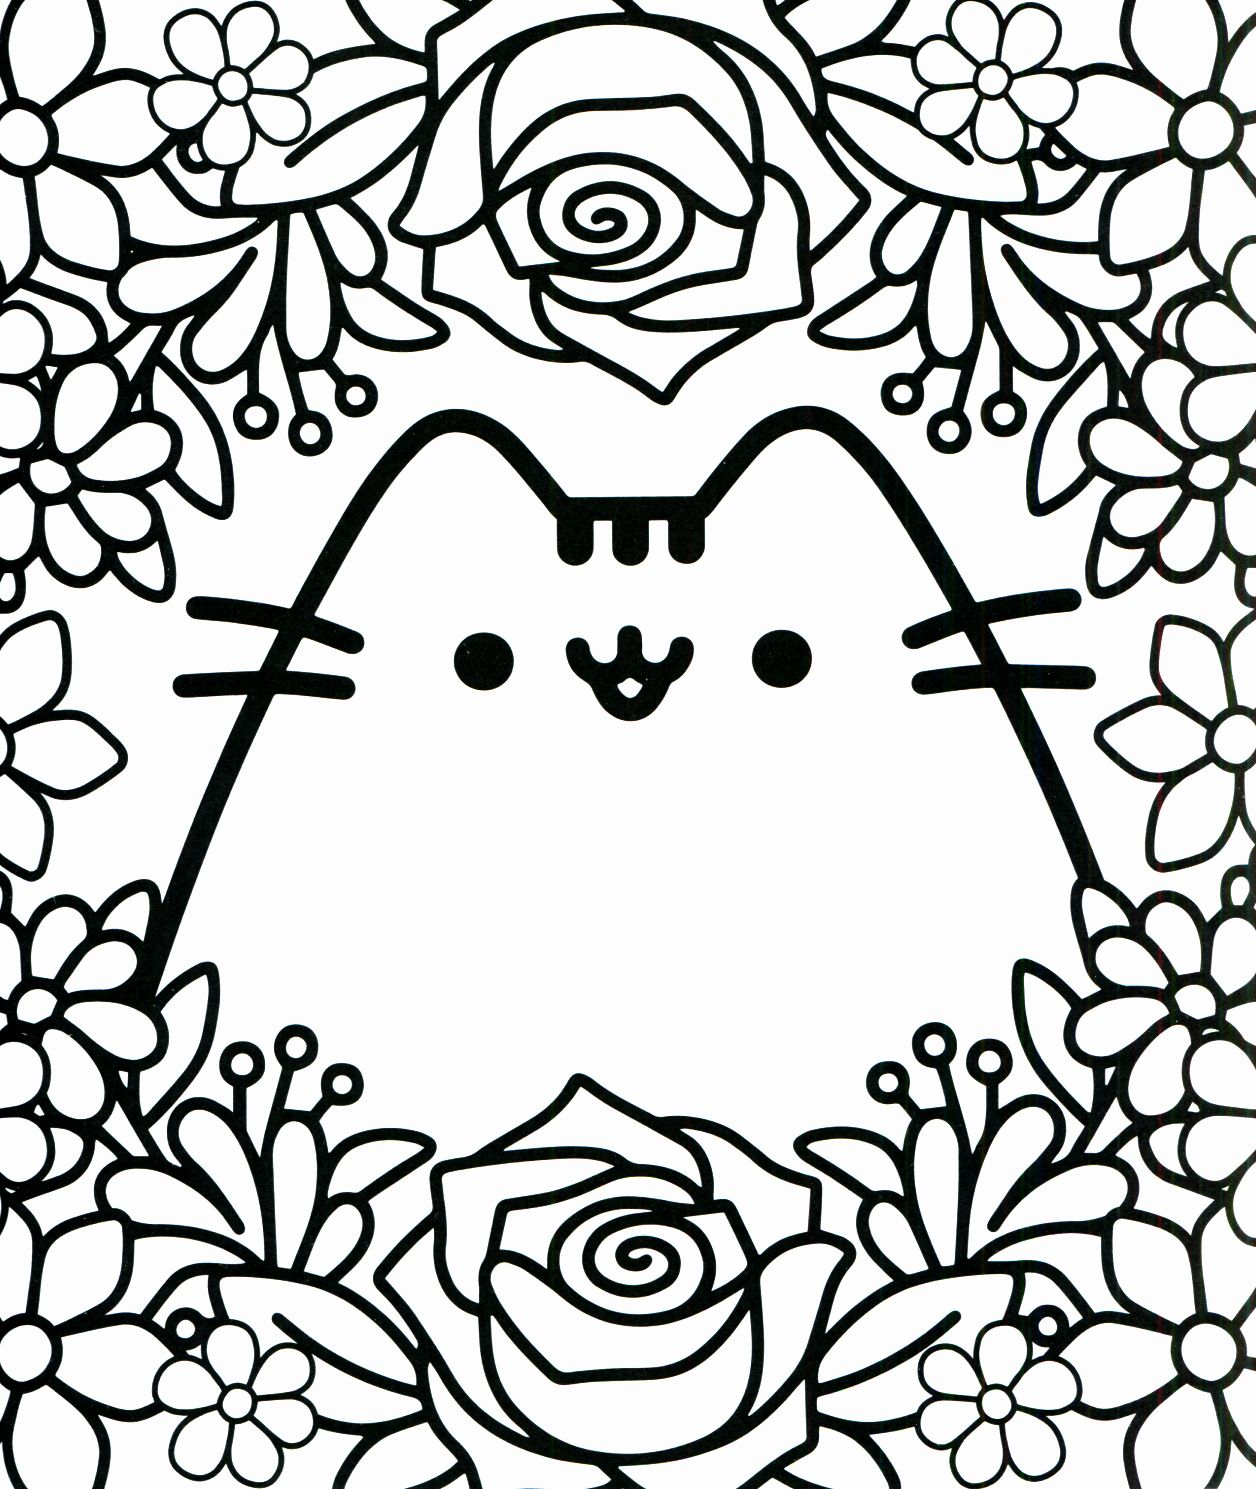 Pusheen Coloring Pages Printable Awesome Pusheen Coloring Book Pusheen Pusheen The Cat Cute Coloring Pages Pusheen Coloring Pages Cat Coloring Page